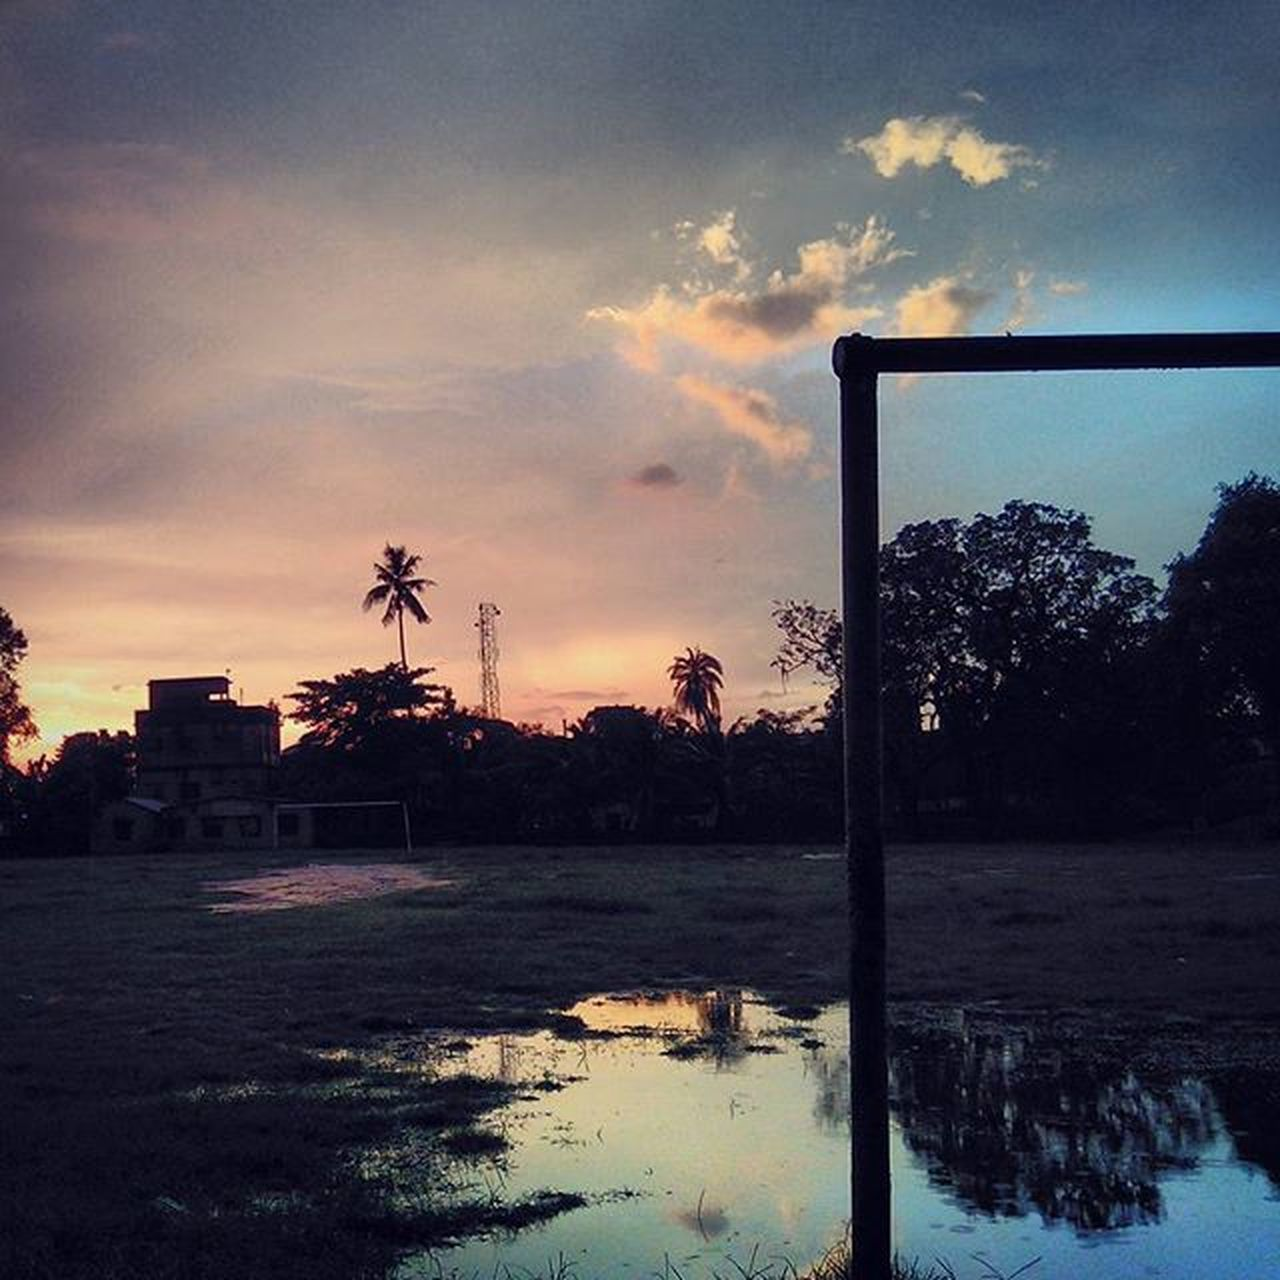 tree, reflection, sky, sunset, sport, soccer, water, outdoors, cloud - sky, no people, soccer field, nature, goal post, day